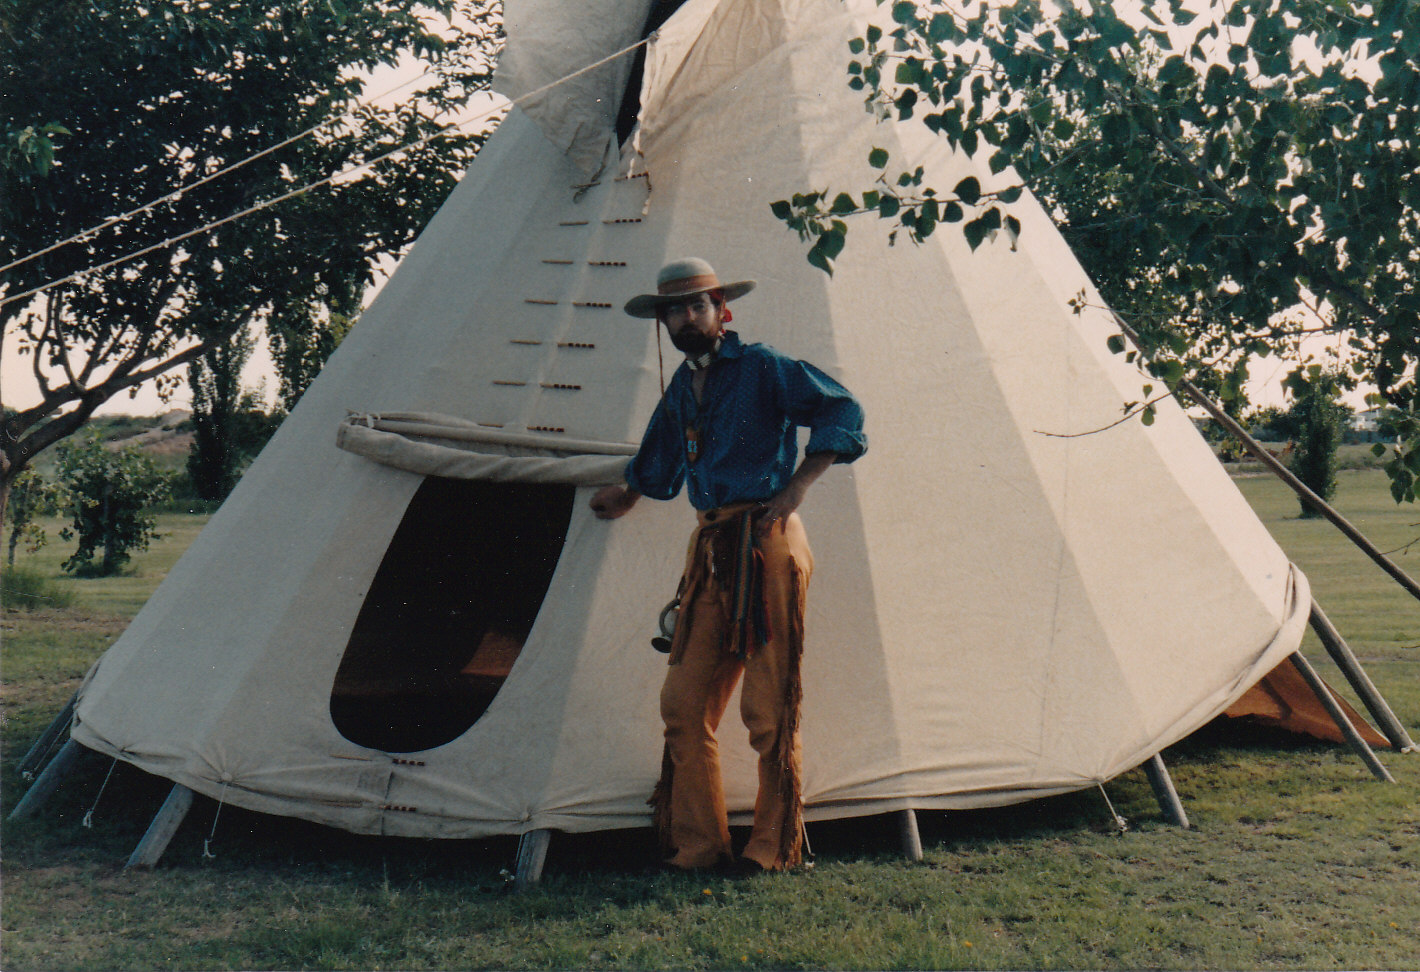 My mountain man days, standing next to my tipi at Jal Lake Park.